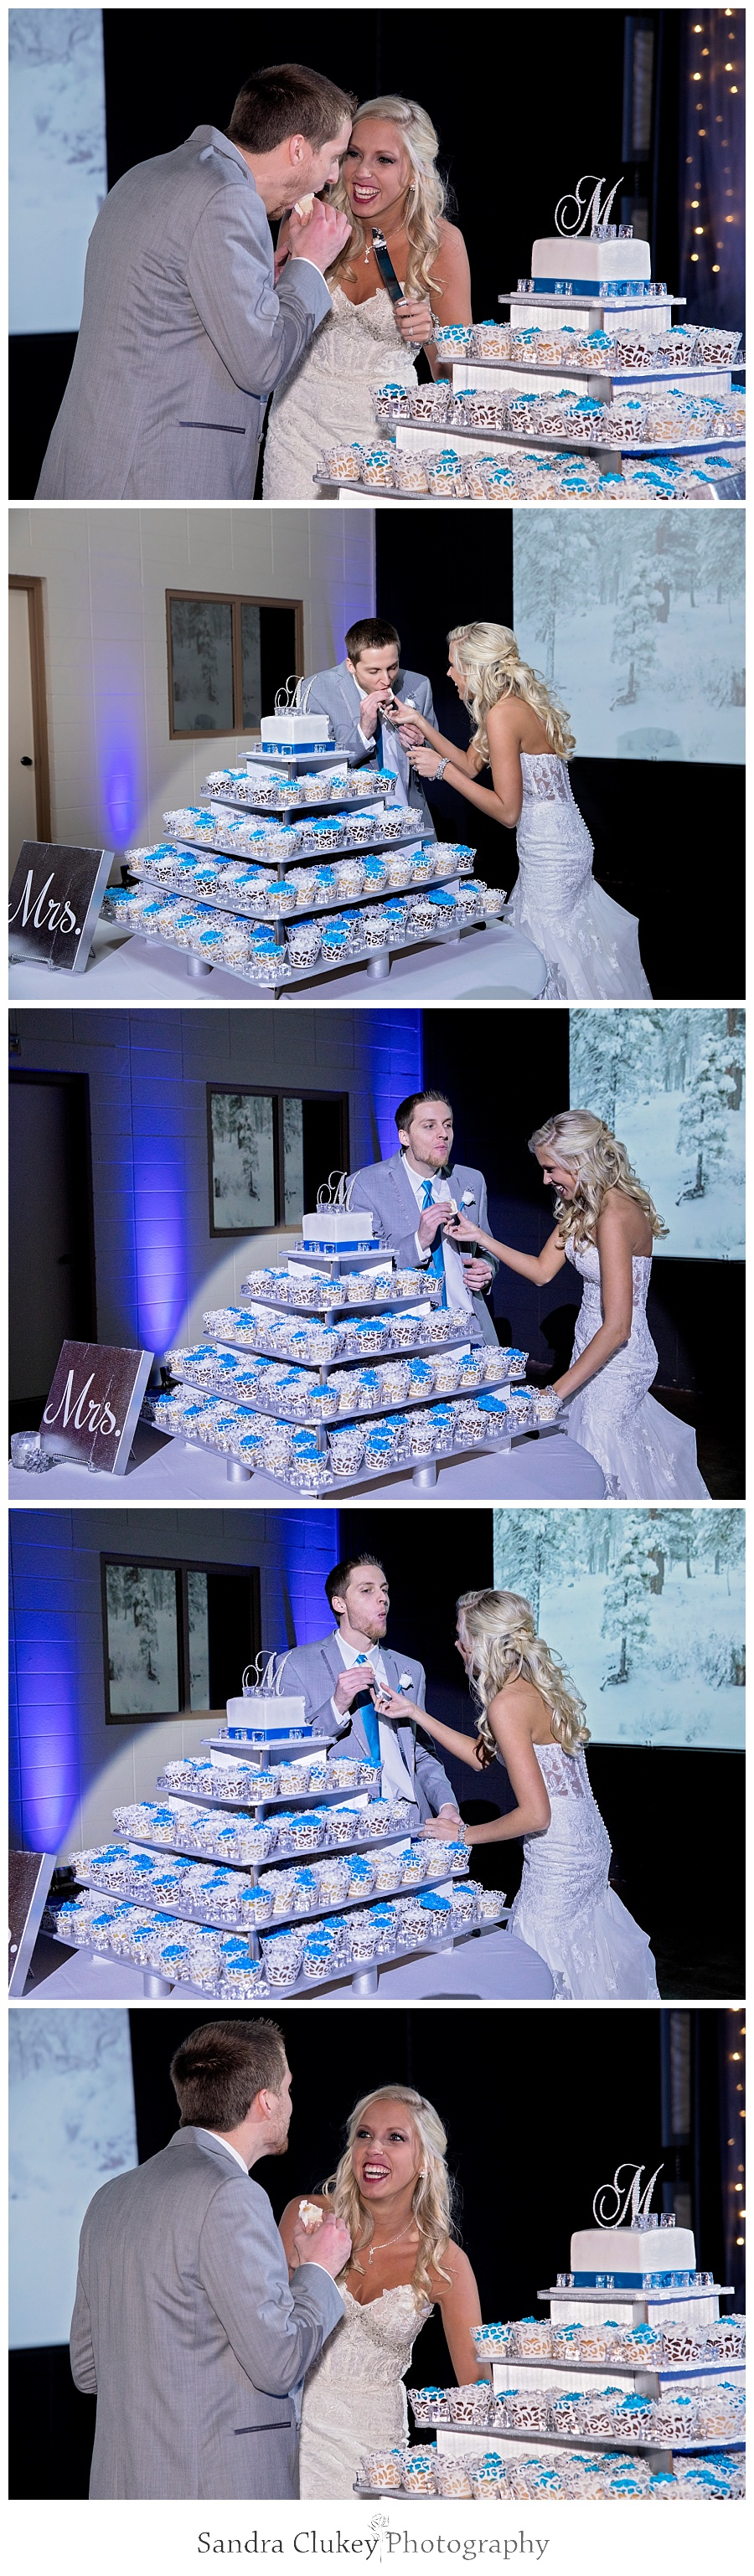 Bride and groom feed each other cake